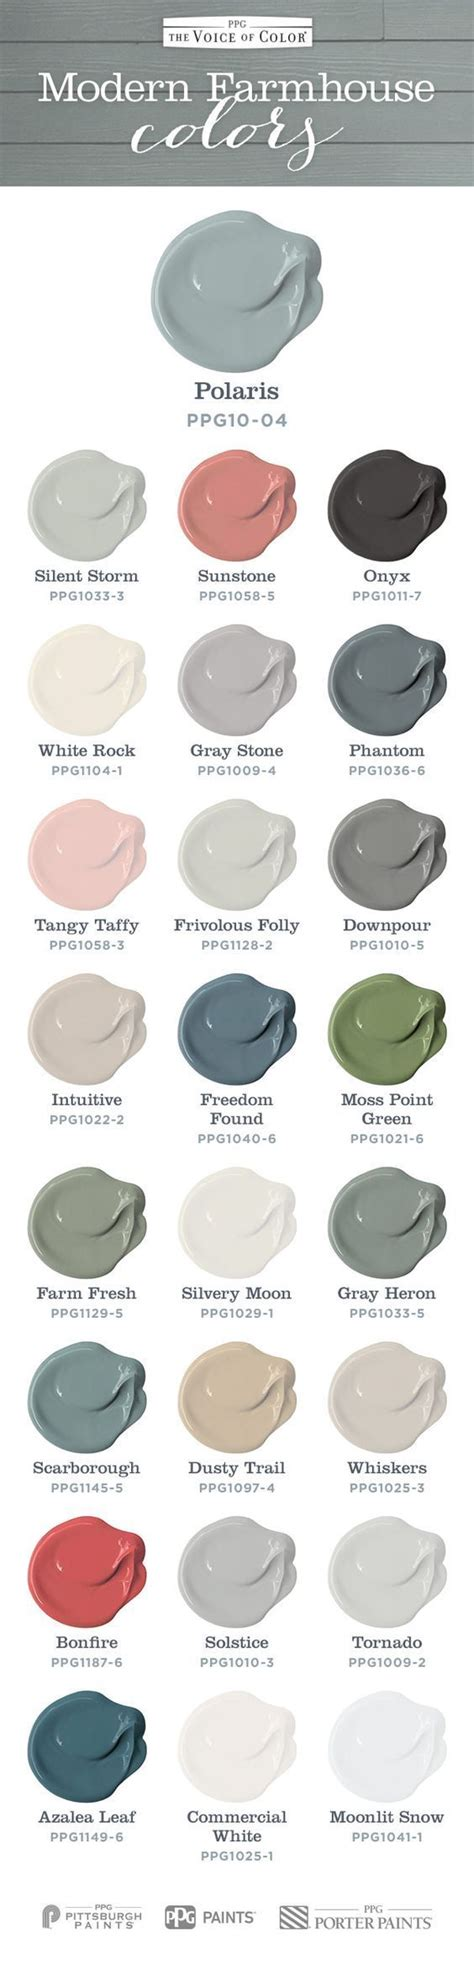 voice of color modern farmhouse colors from voice of color fynes designs